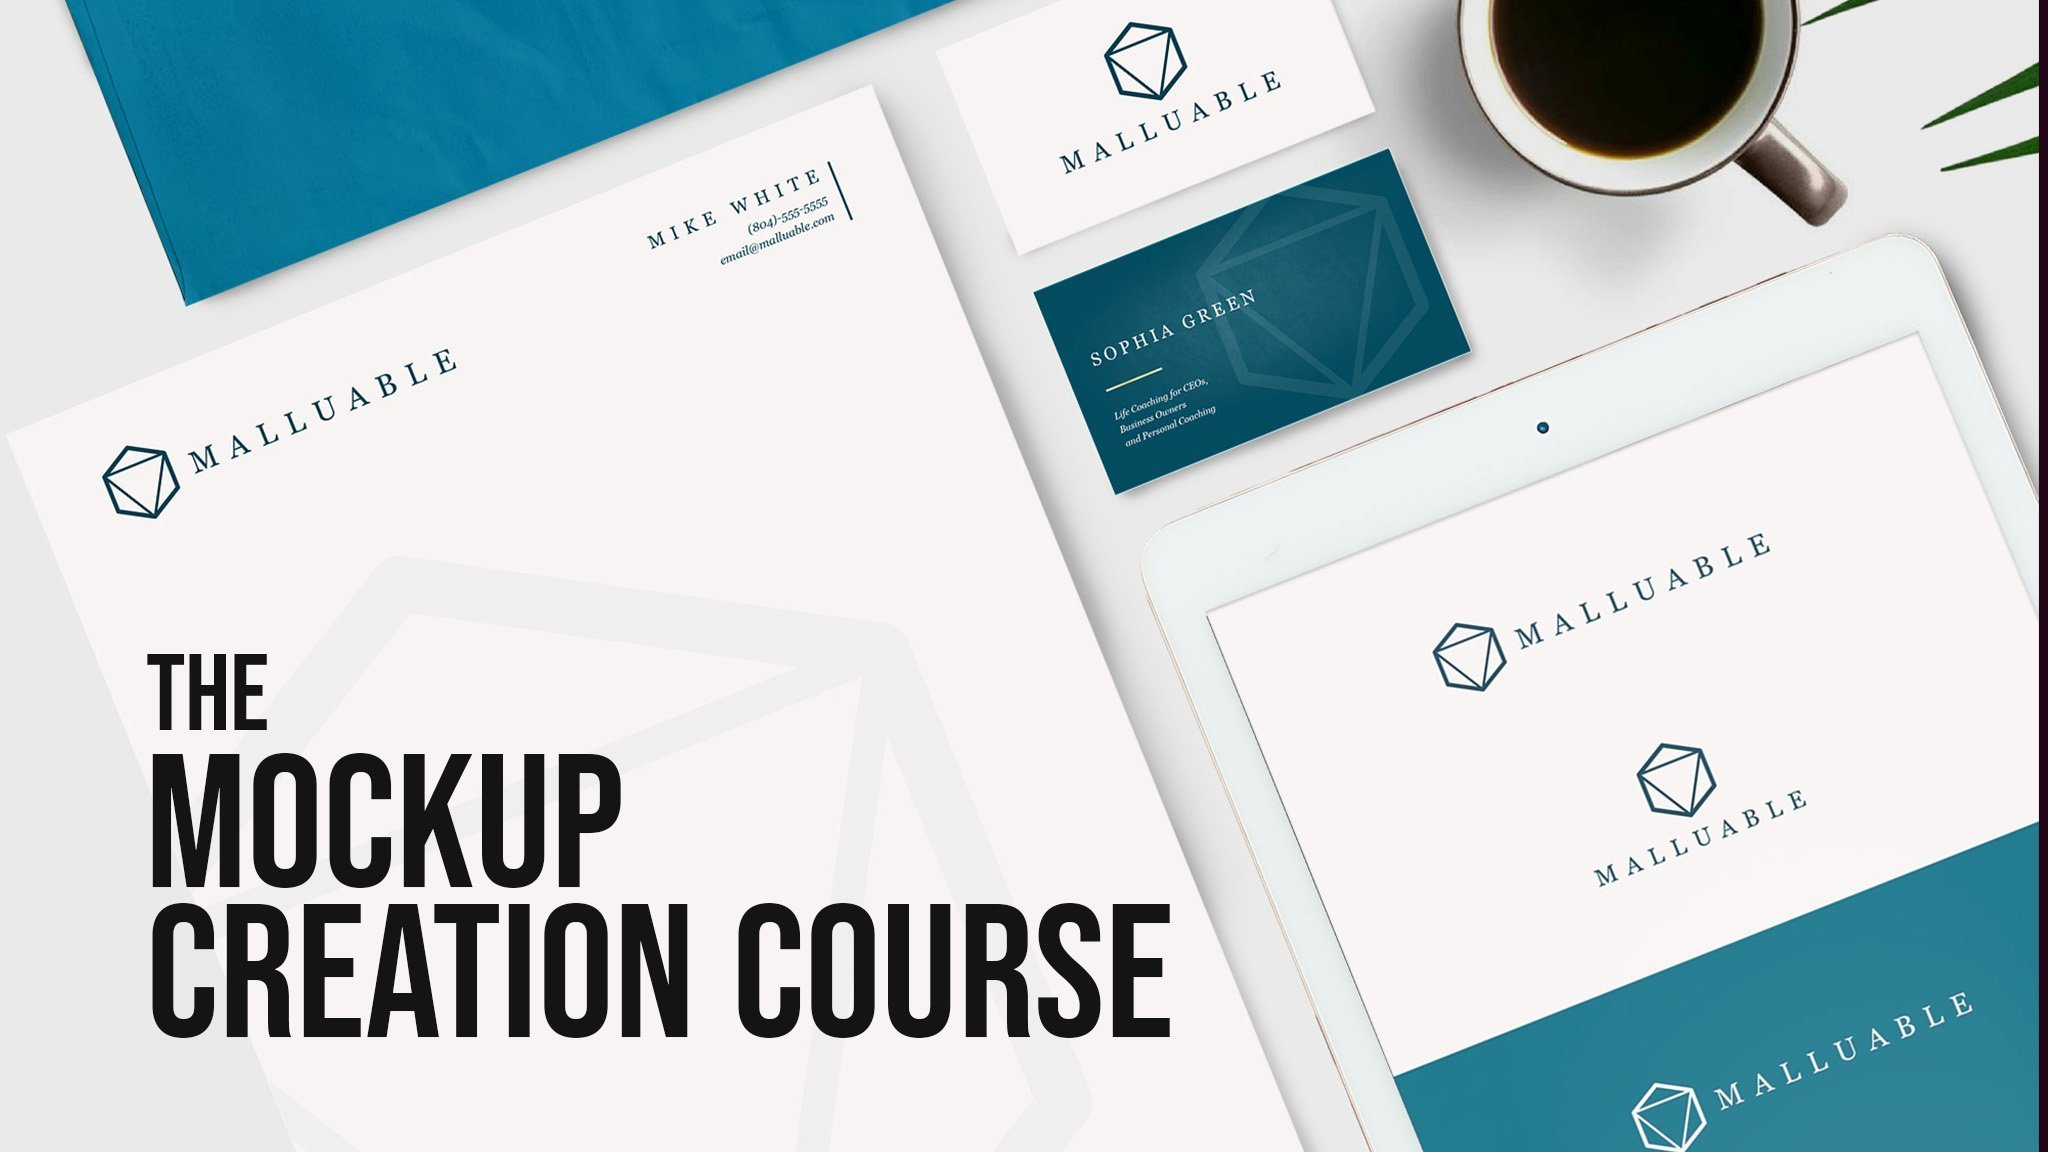 The Mockup Creation Course for Adobe Photoshop and Affinity Photo